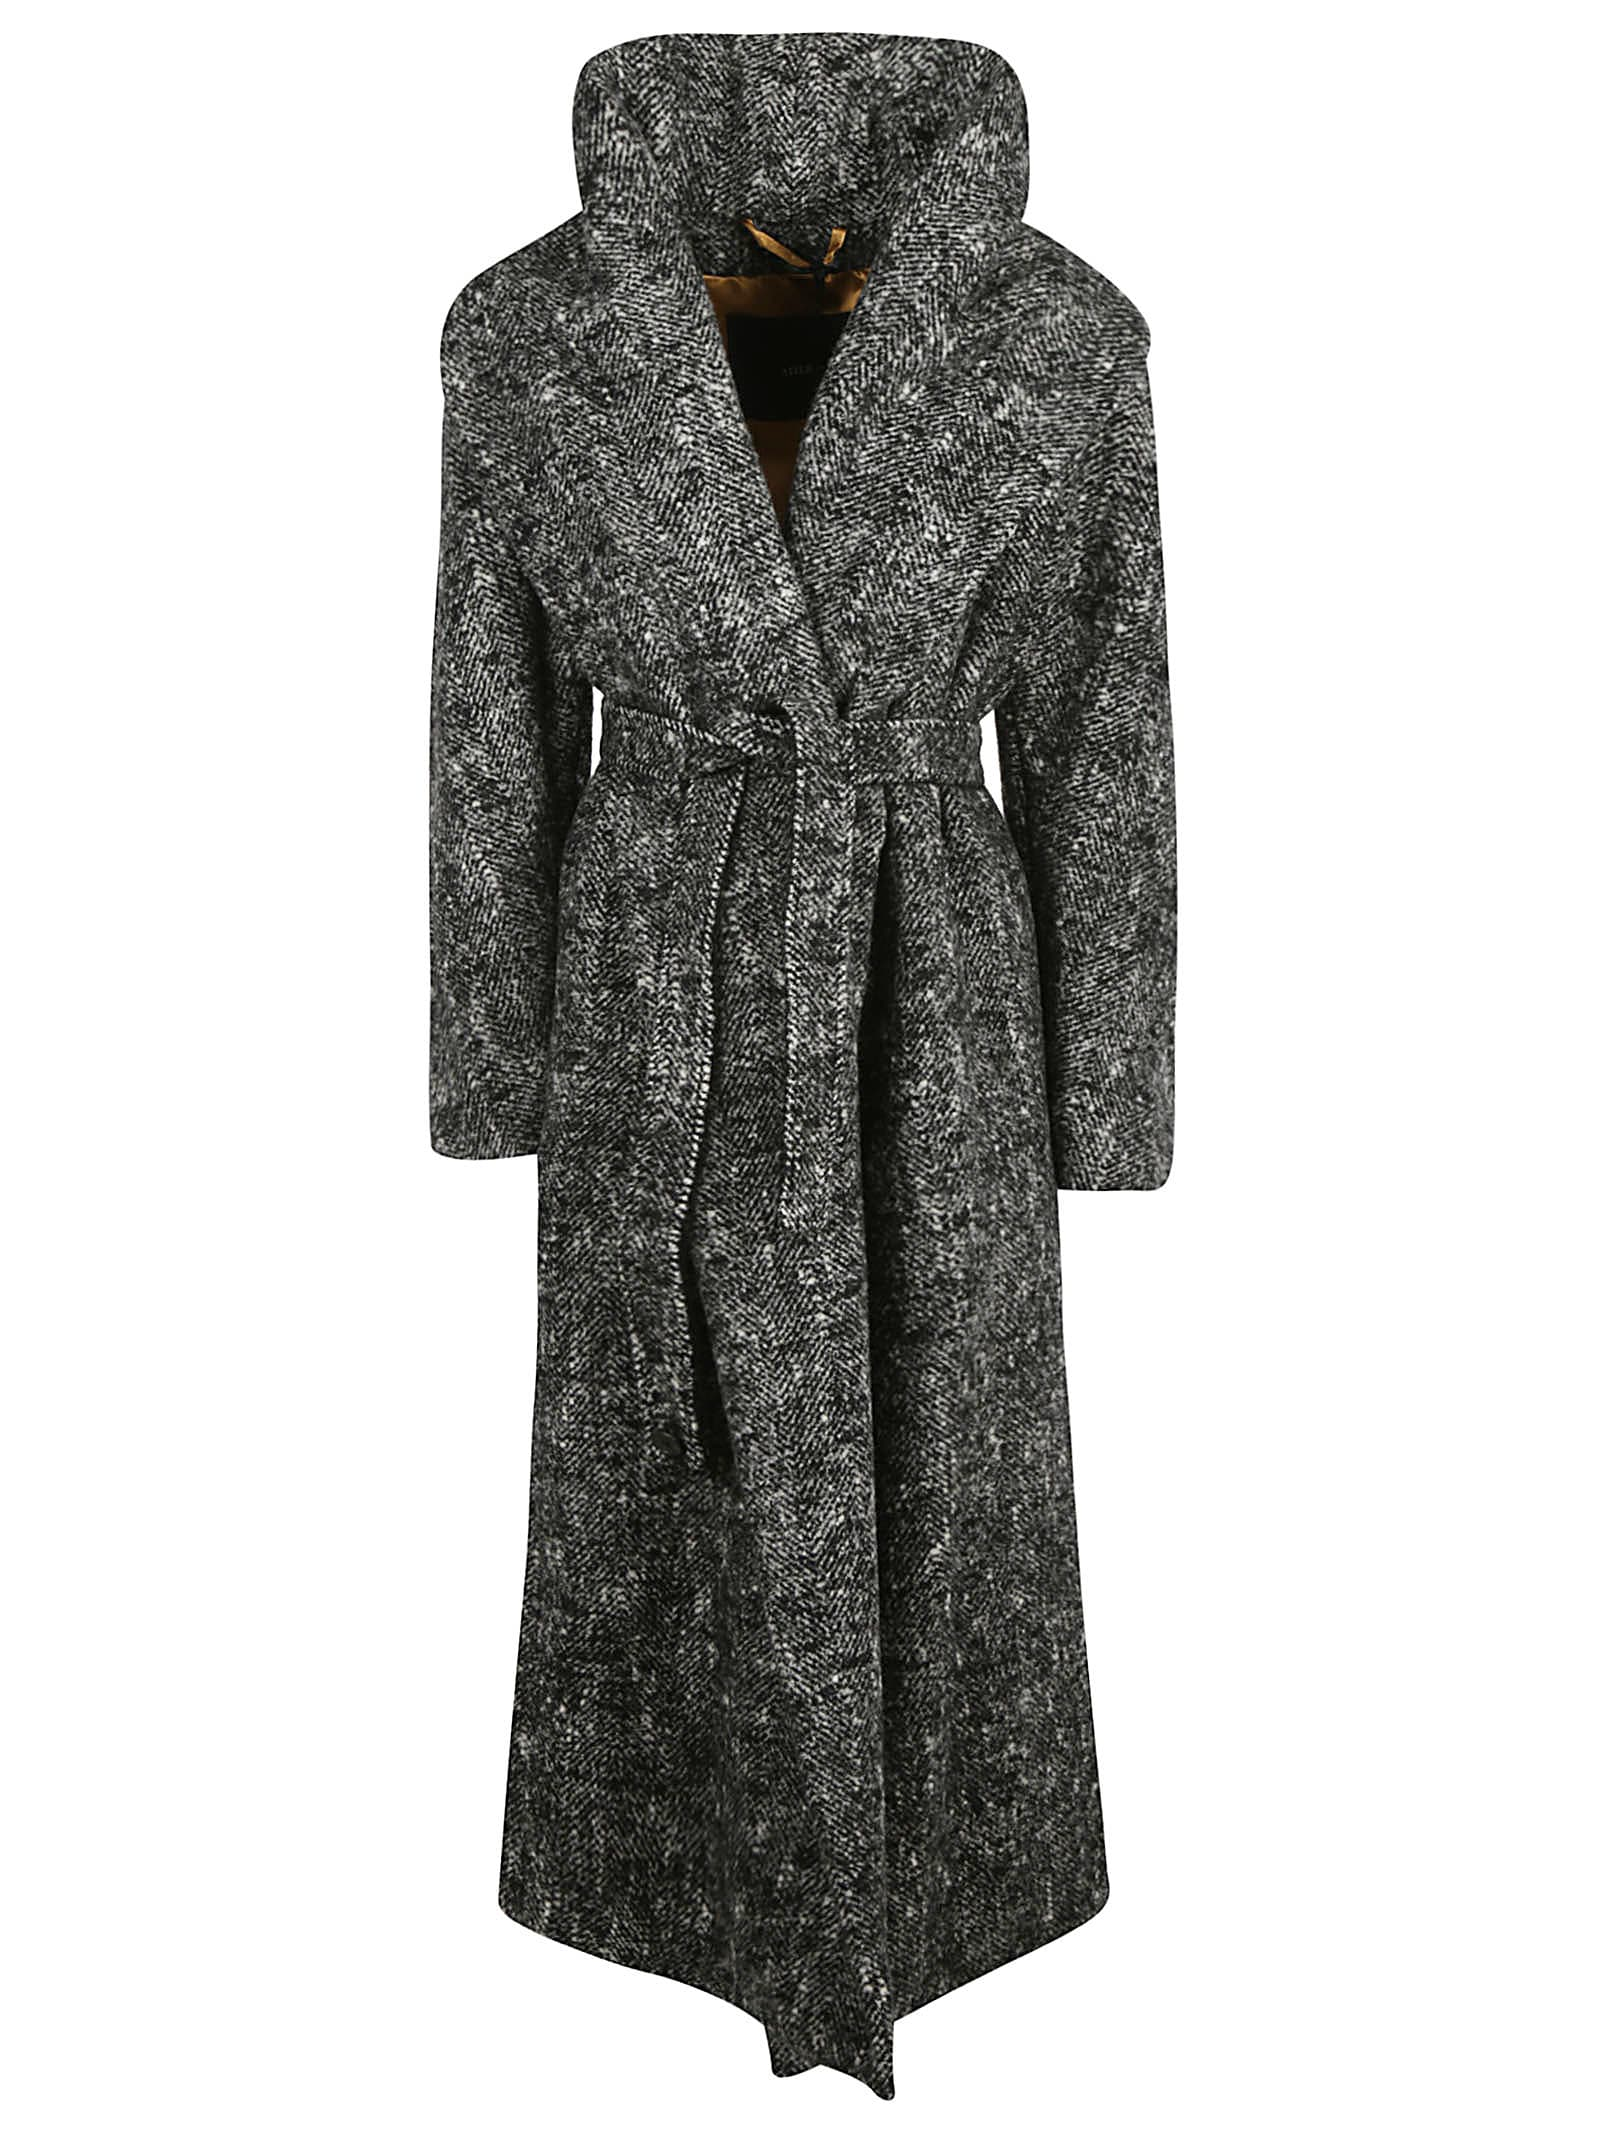 Max Mara High-waist Long Wrapped Coat